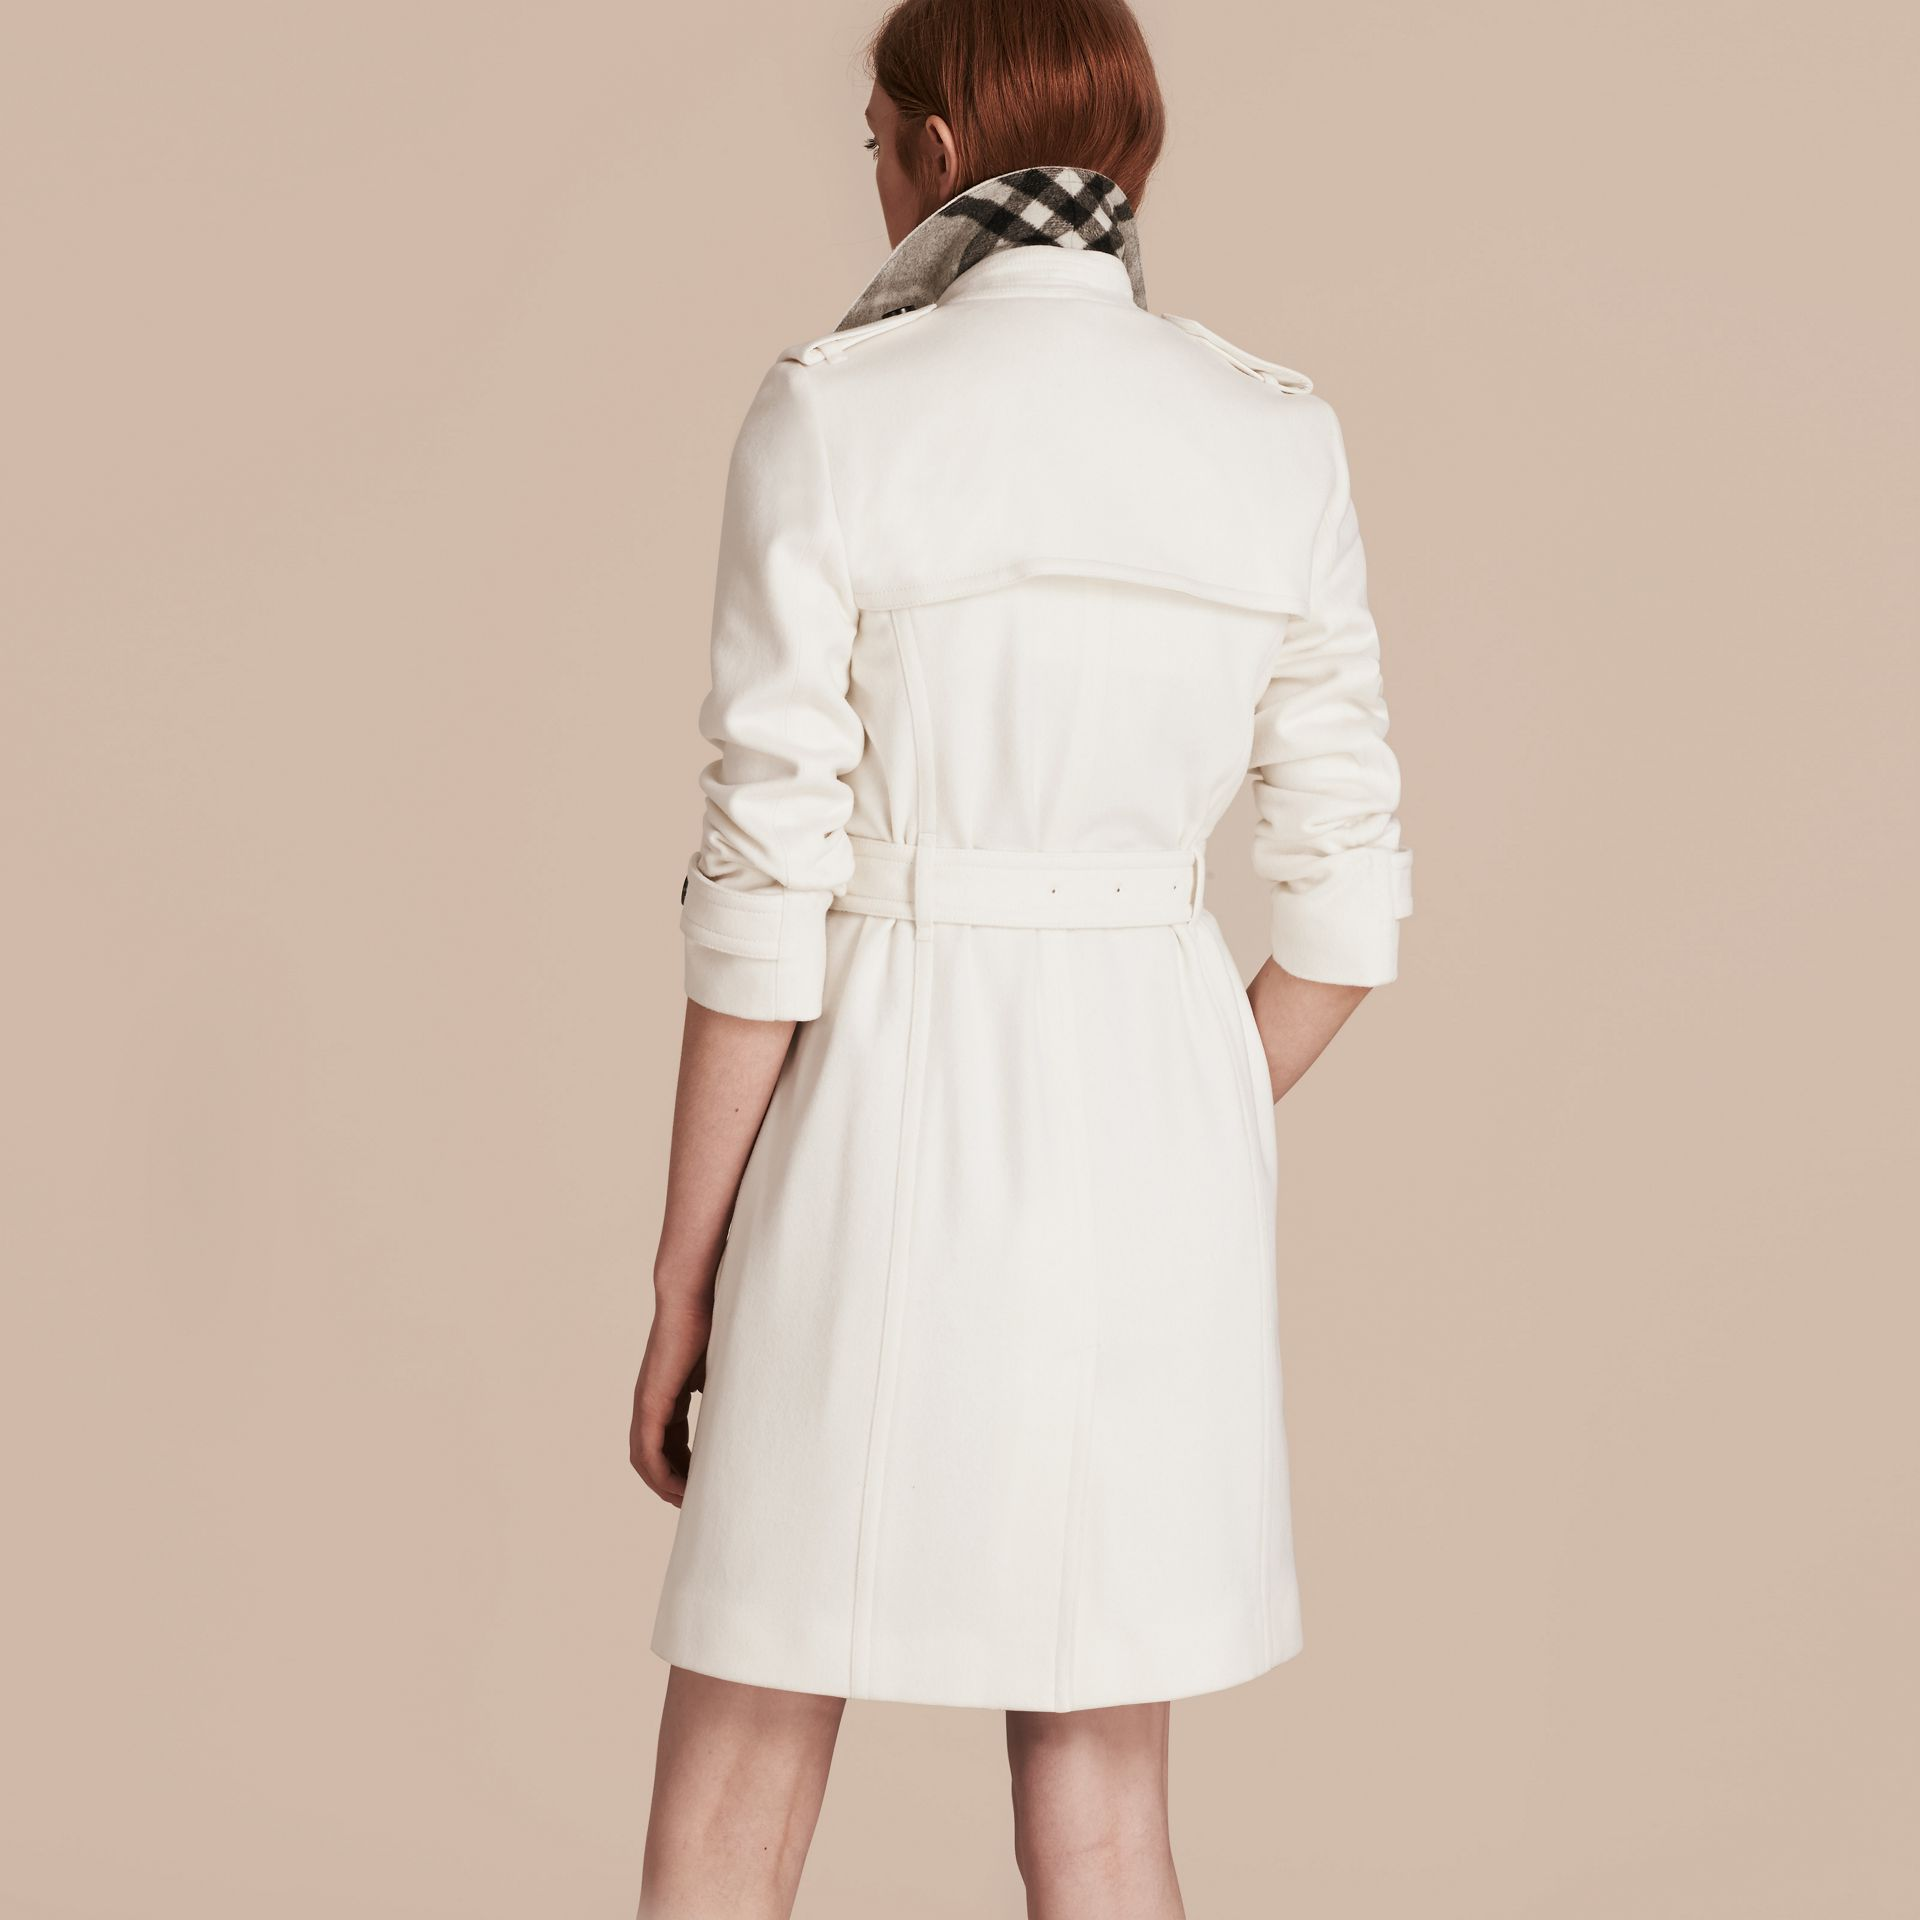 Blanc Trench-coat portefeuille en cachemire Blanc - photo de la galerie 3